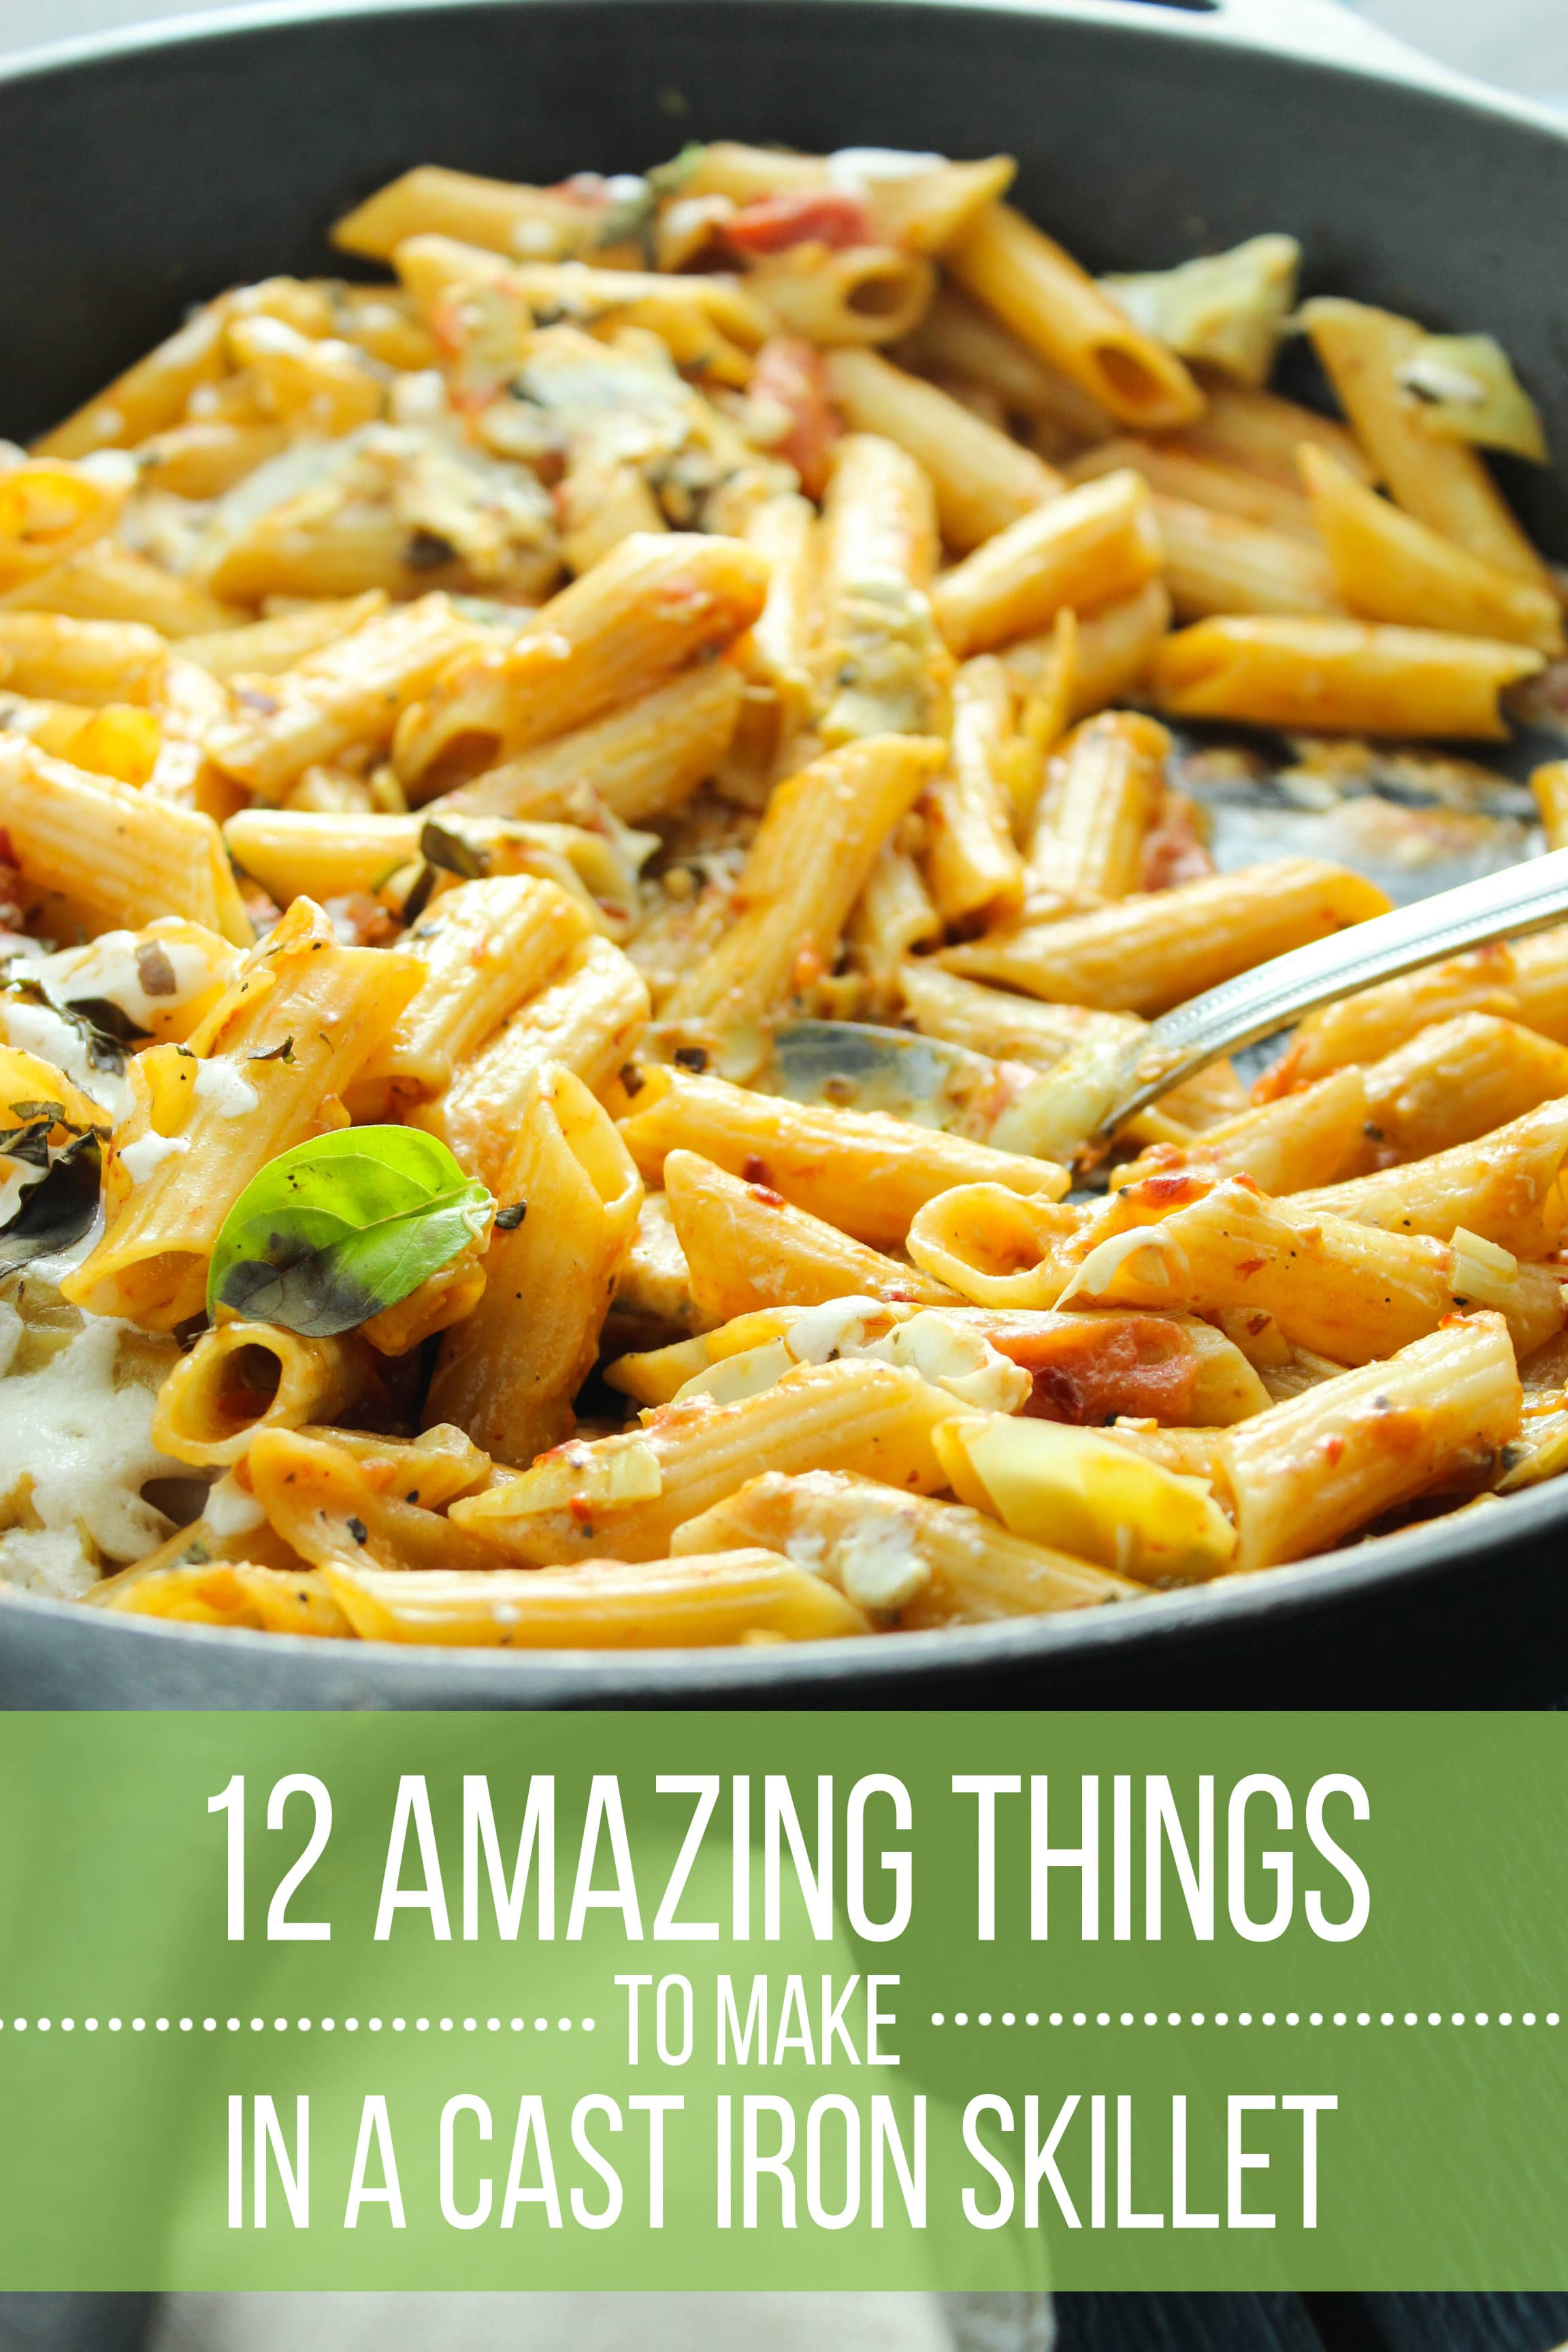 12 Amazing Things You Can Make In A Cast Iron Skillet